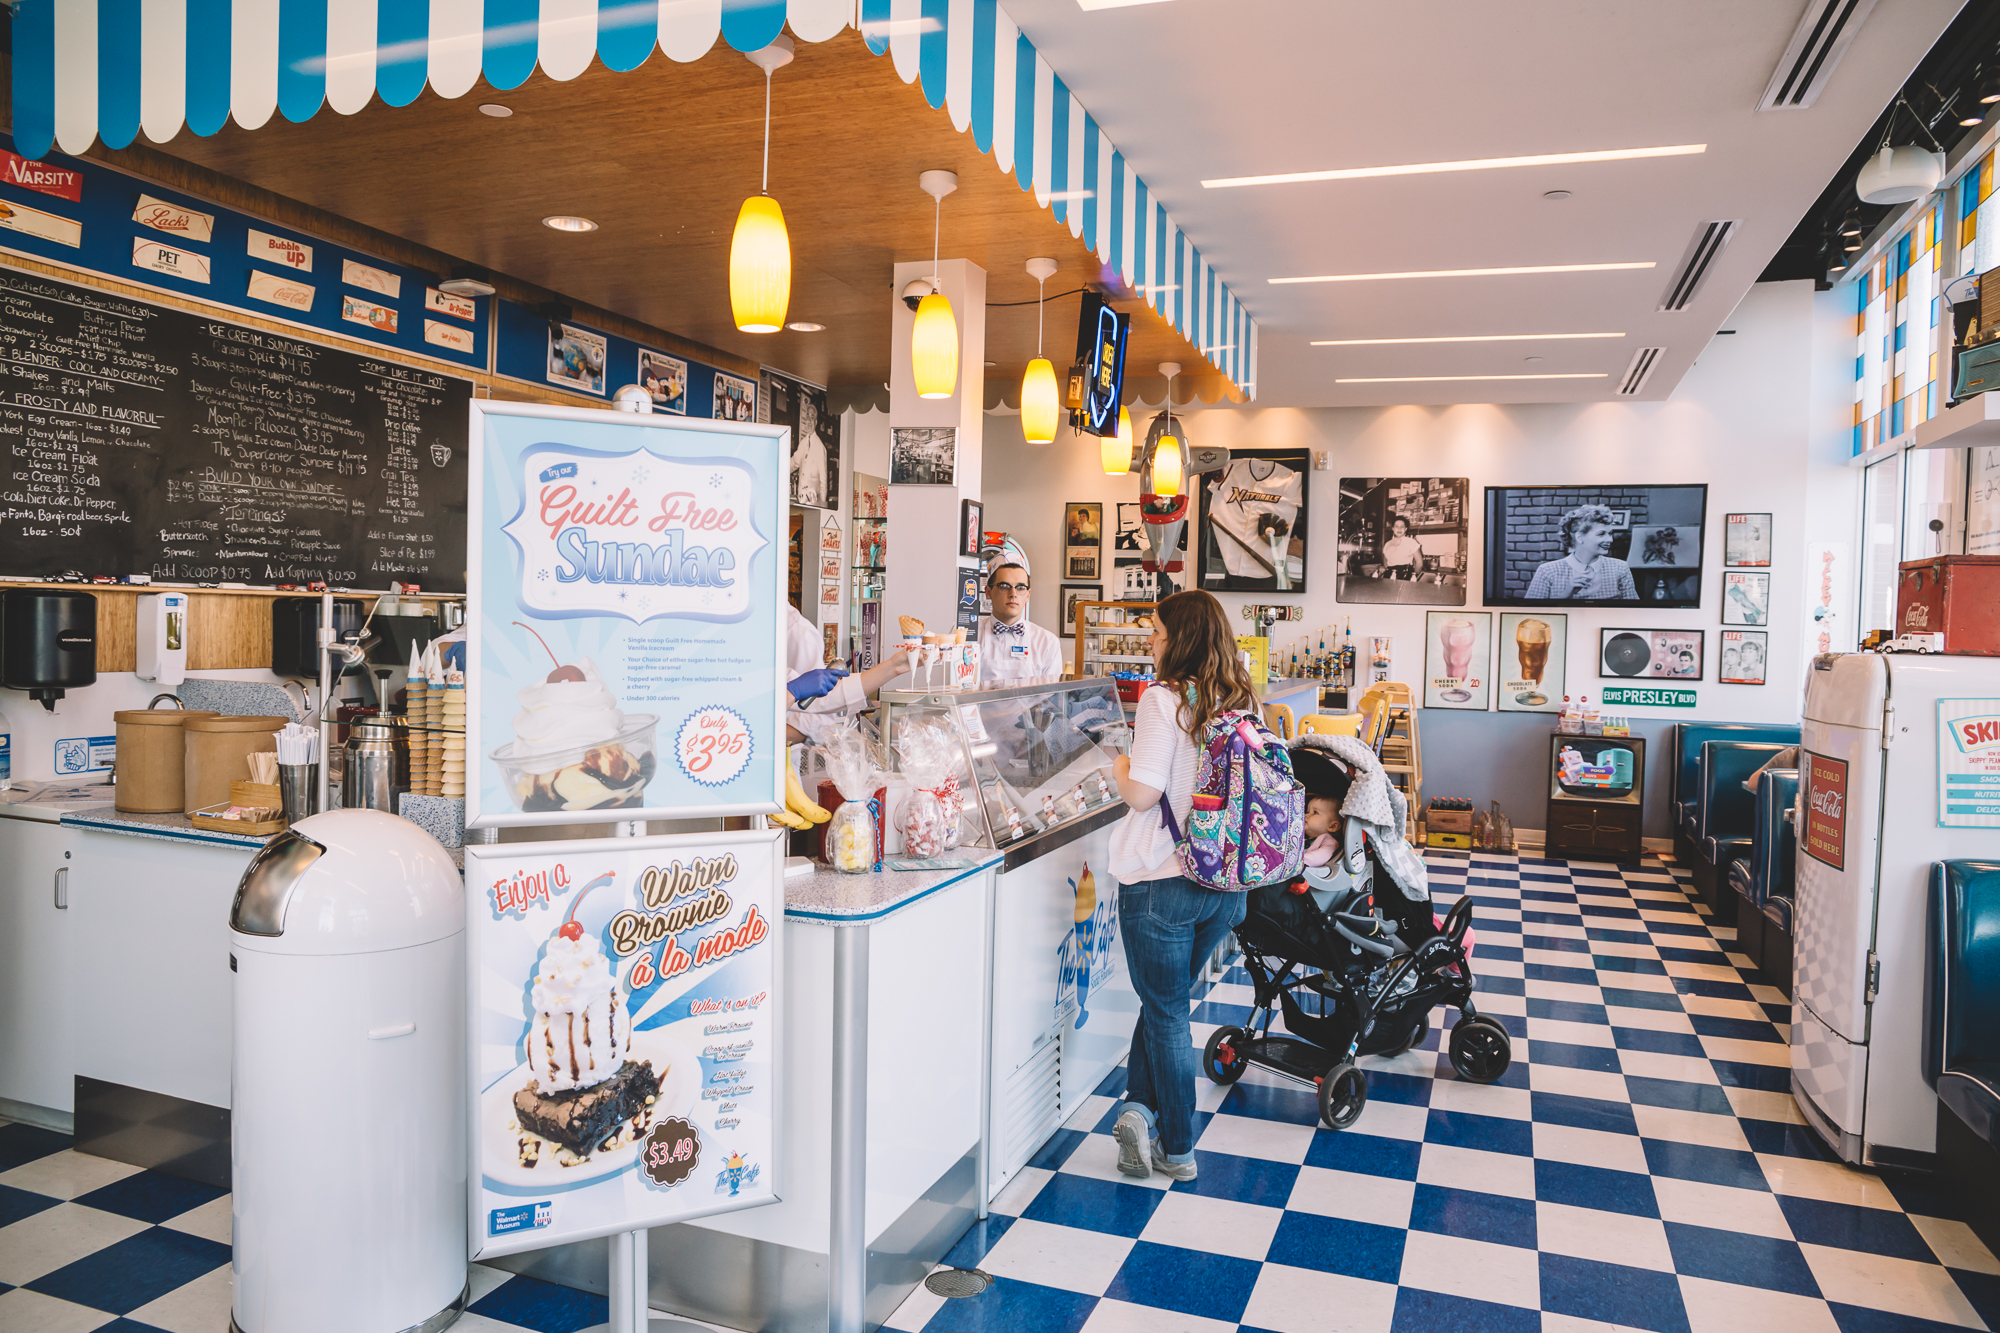 Get $1 ice cream at the diner